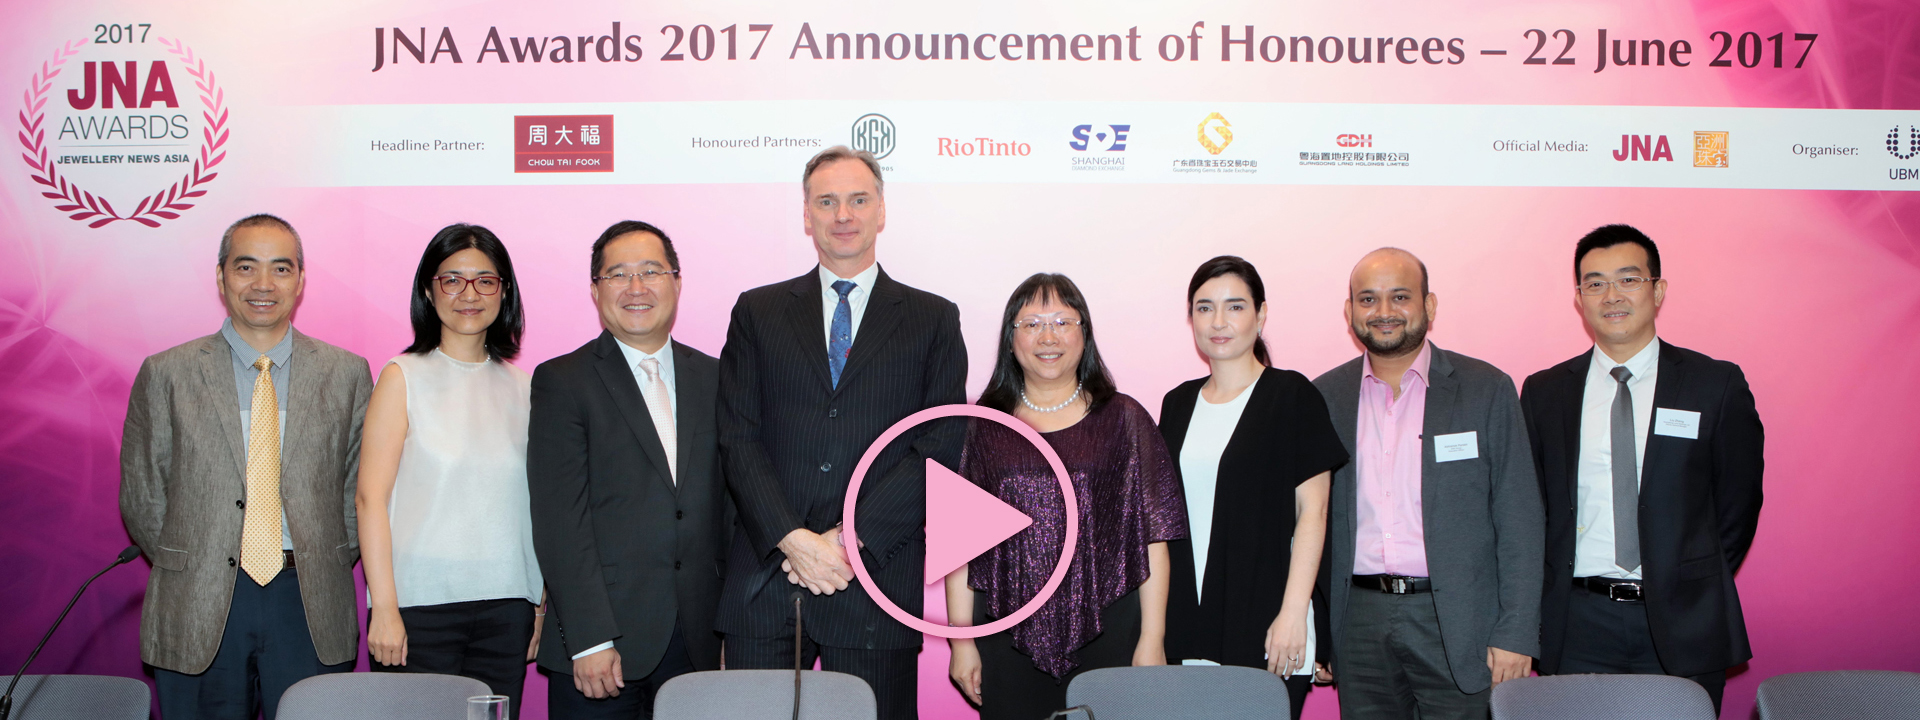 2017 Honouree Announcement